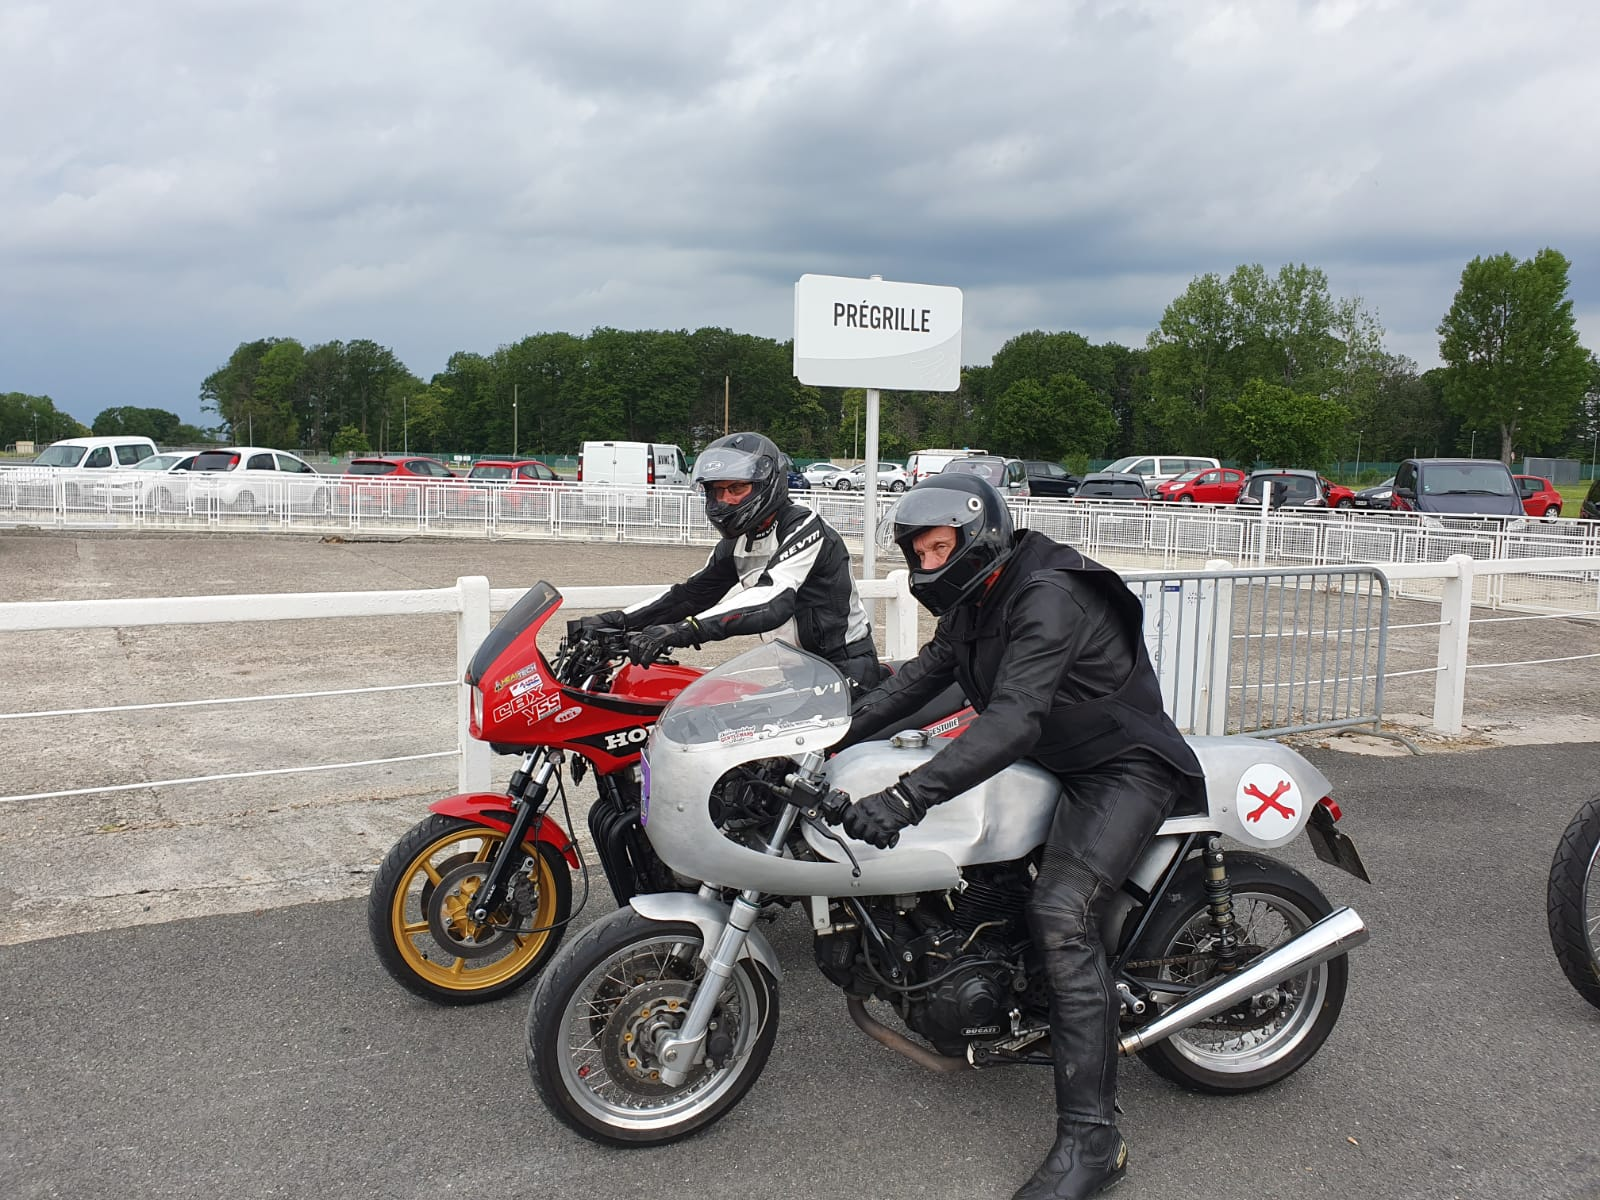 Cafe Racer Festival Montlhery in 2021 – A chance to have fun during Covid…